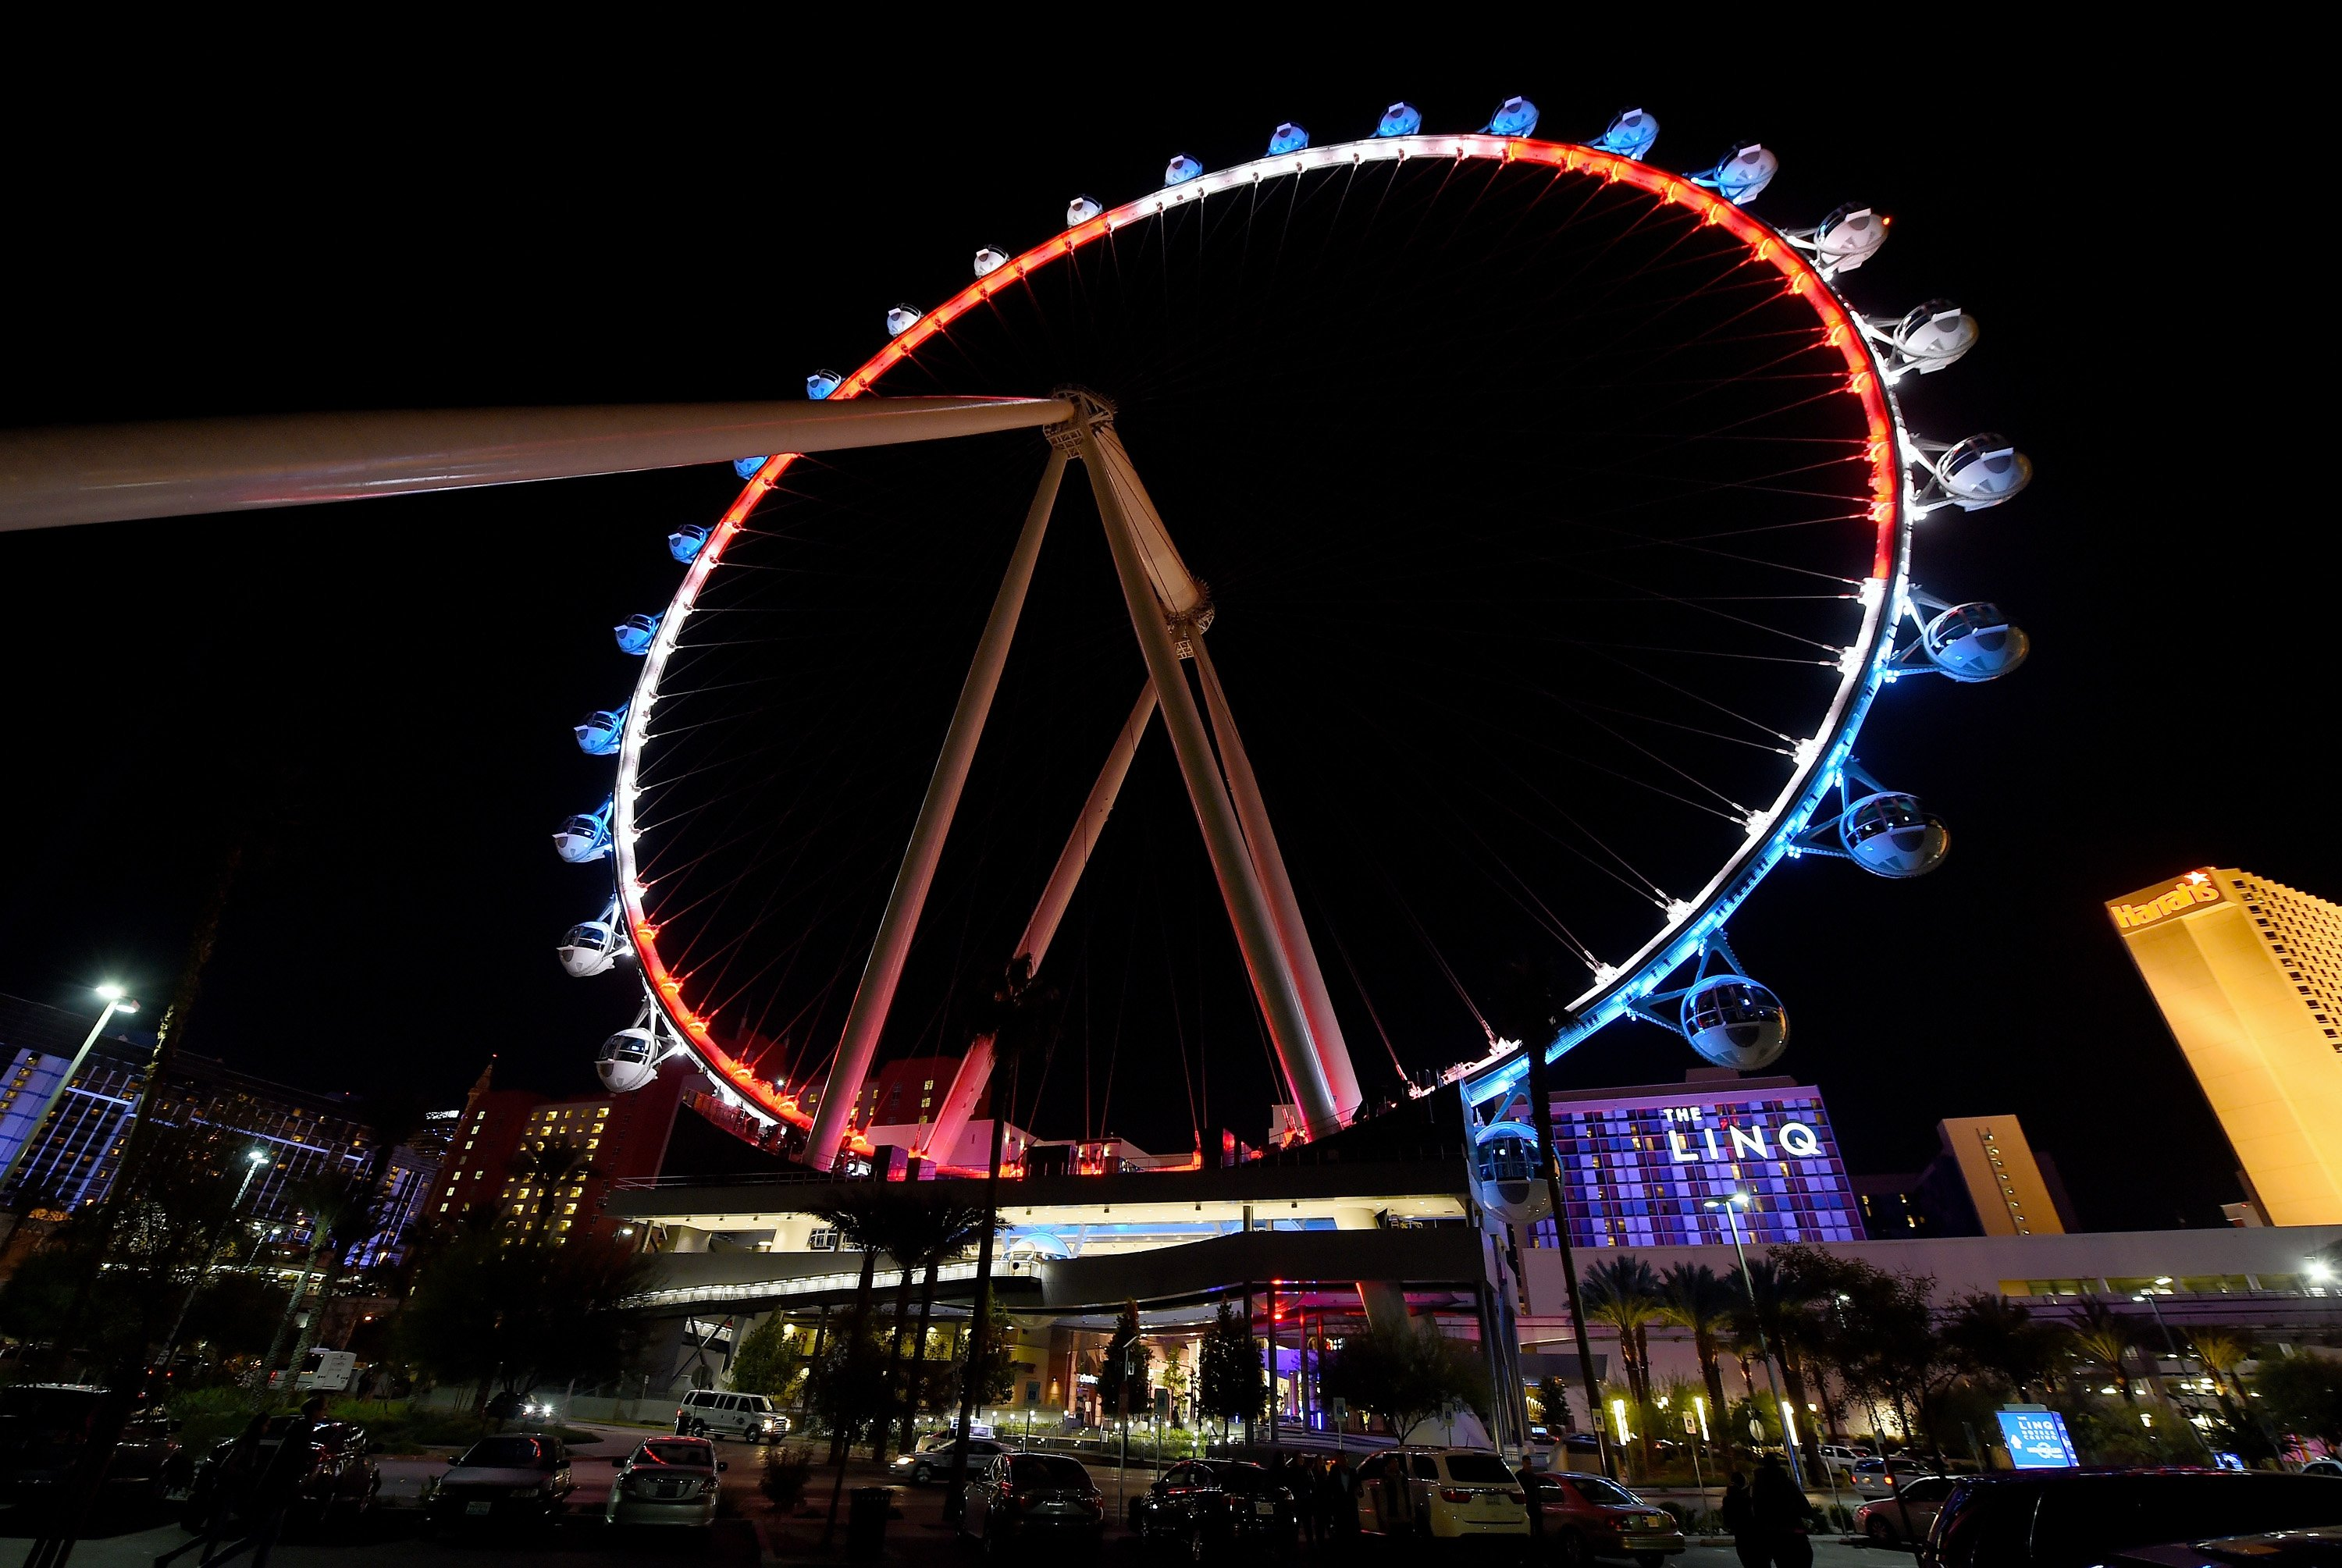 The High Roller at The LINQ Promenade on the Las Vegas Strip is lit up on Nov. 13, 2015.